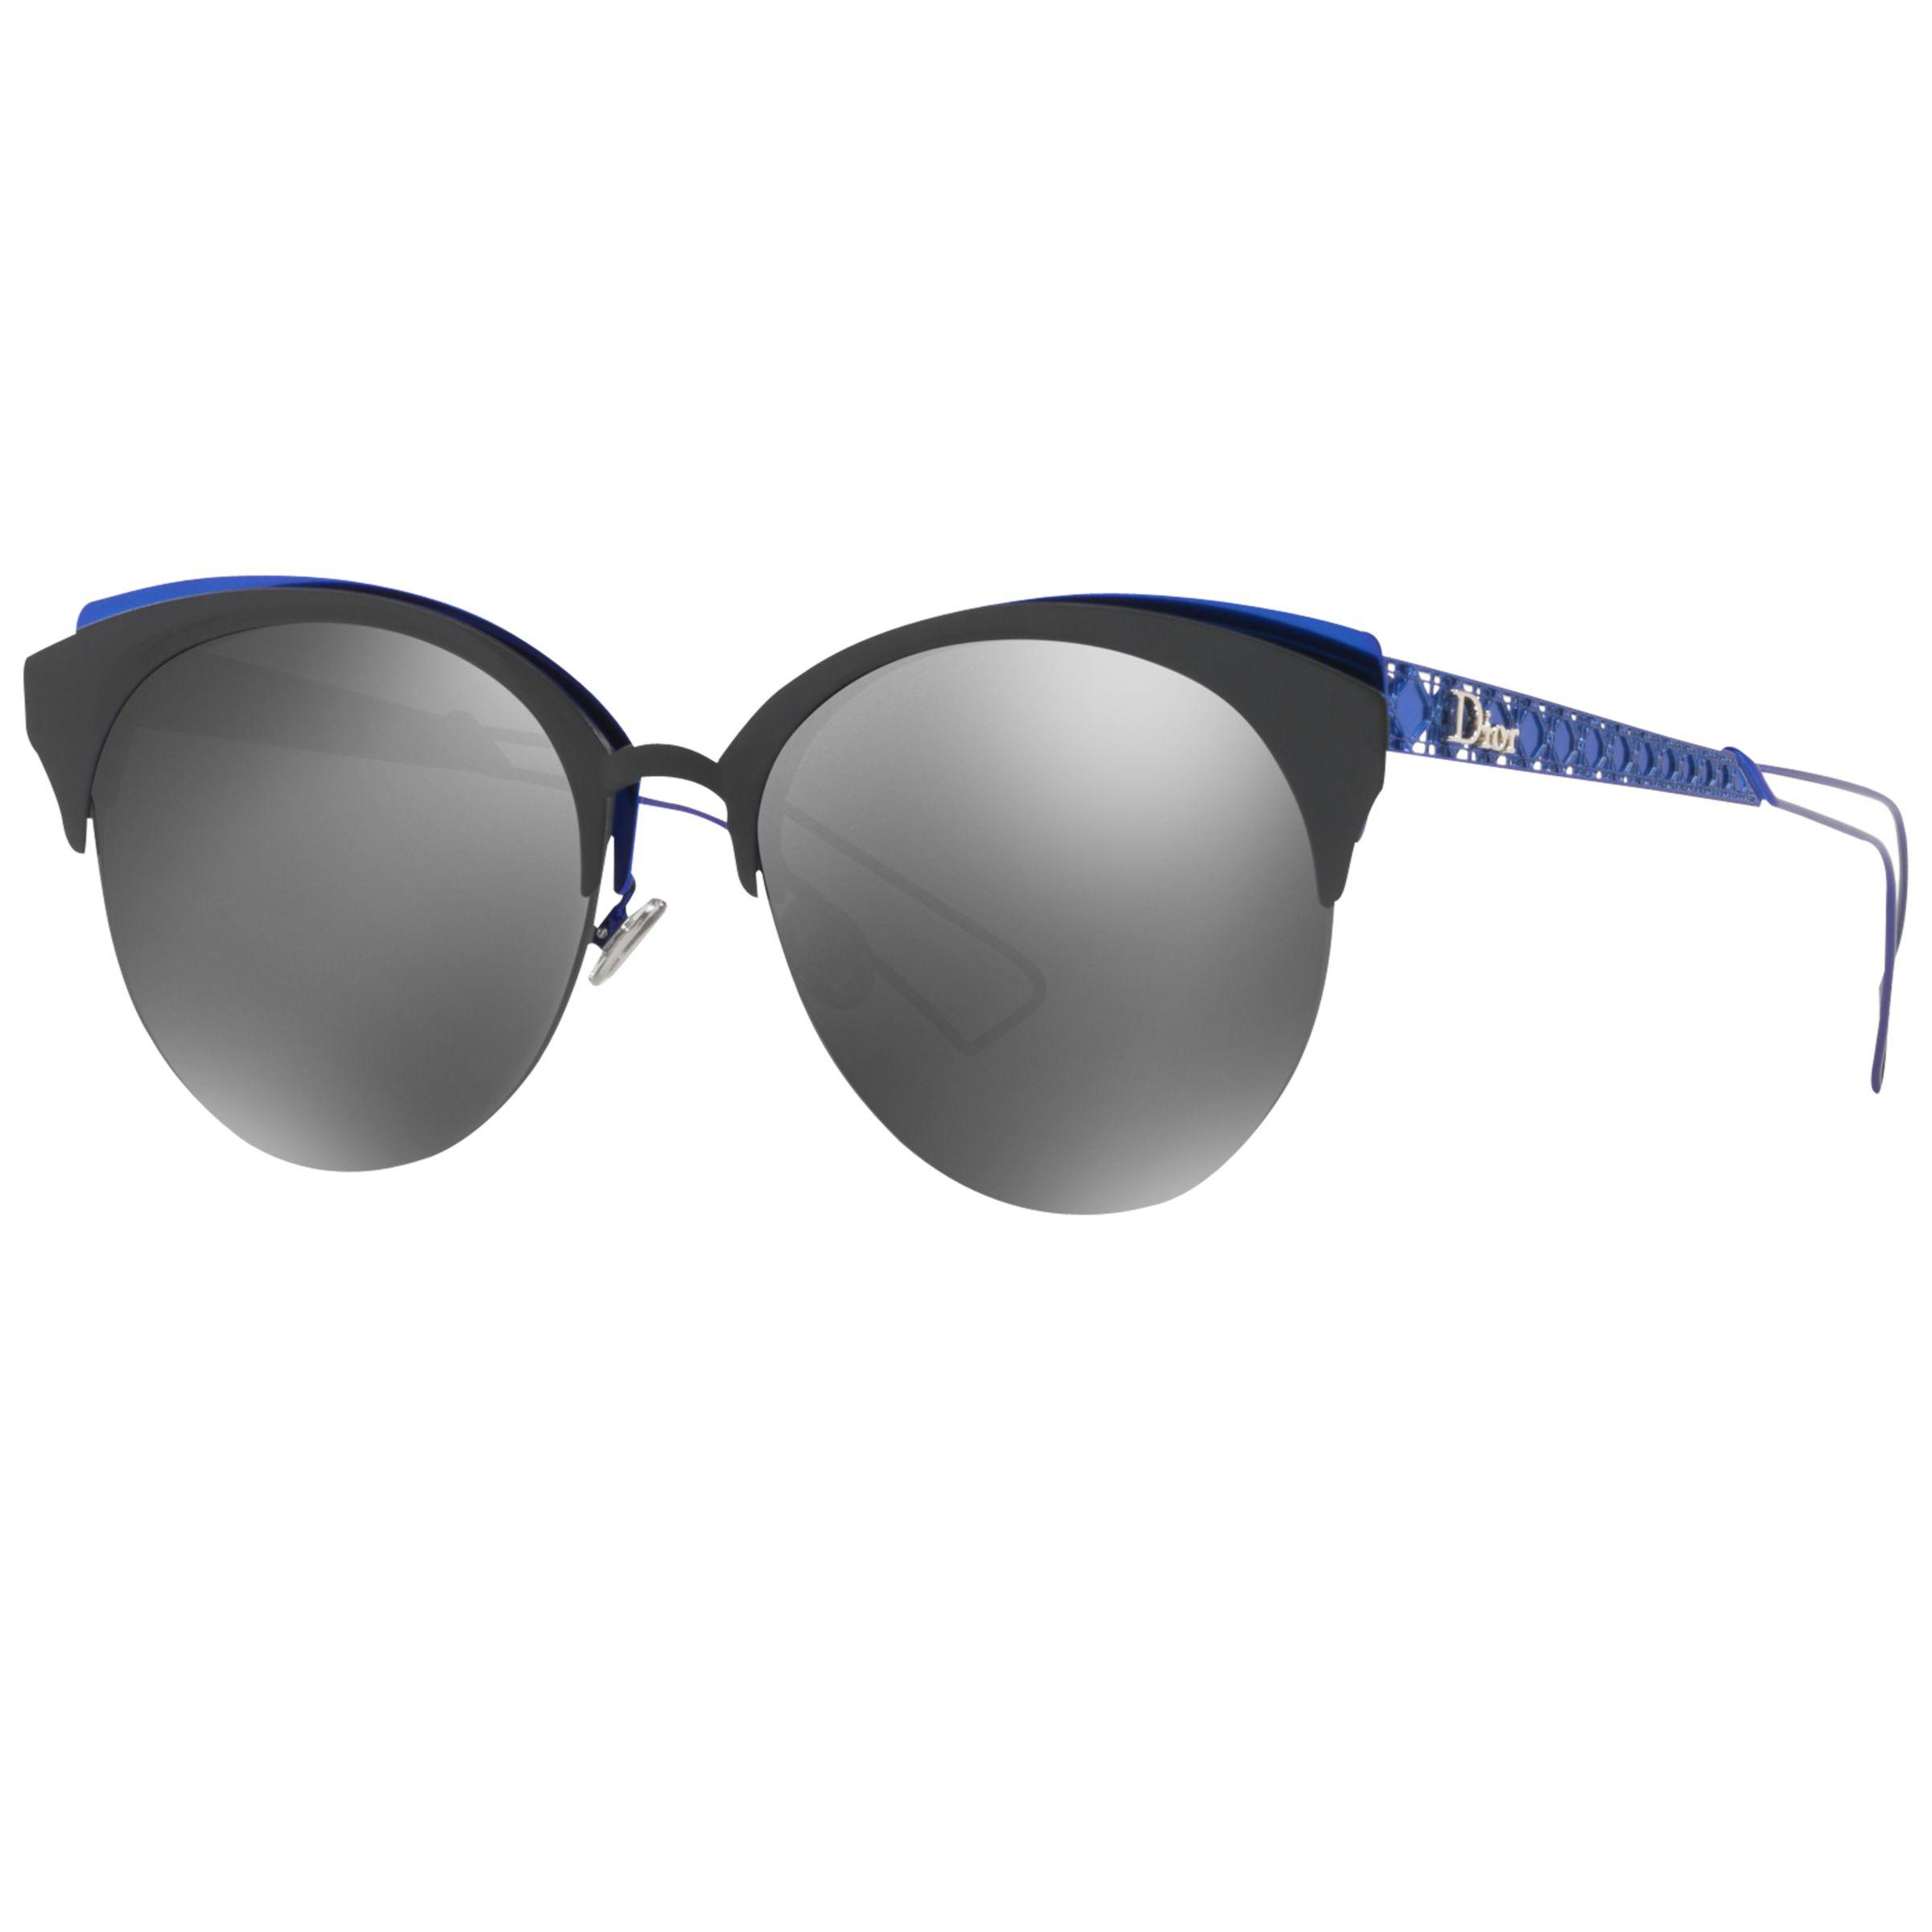 2ad4f4ad6567 Dior. Women's Ama Club Oval Sunglasses. £430 From John Lewis and Partners